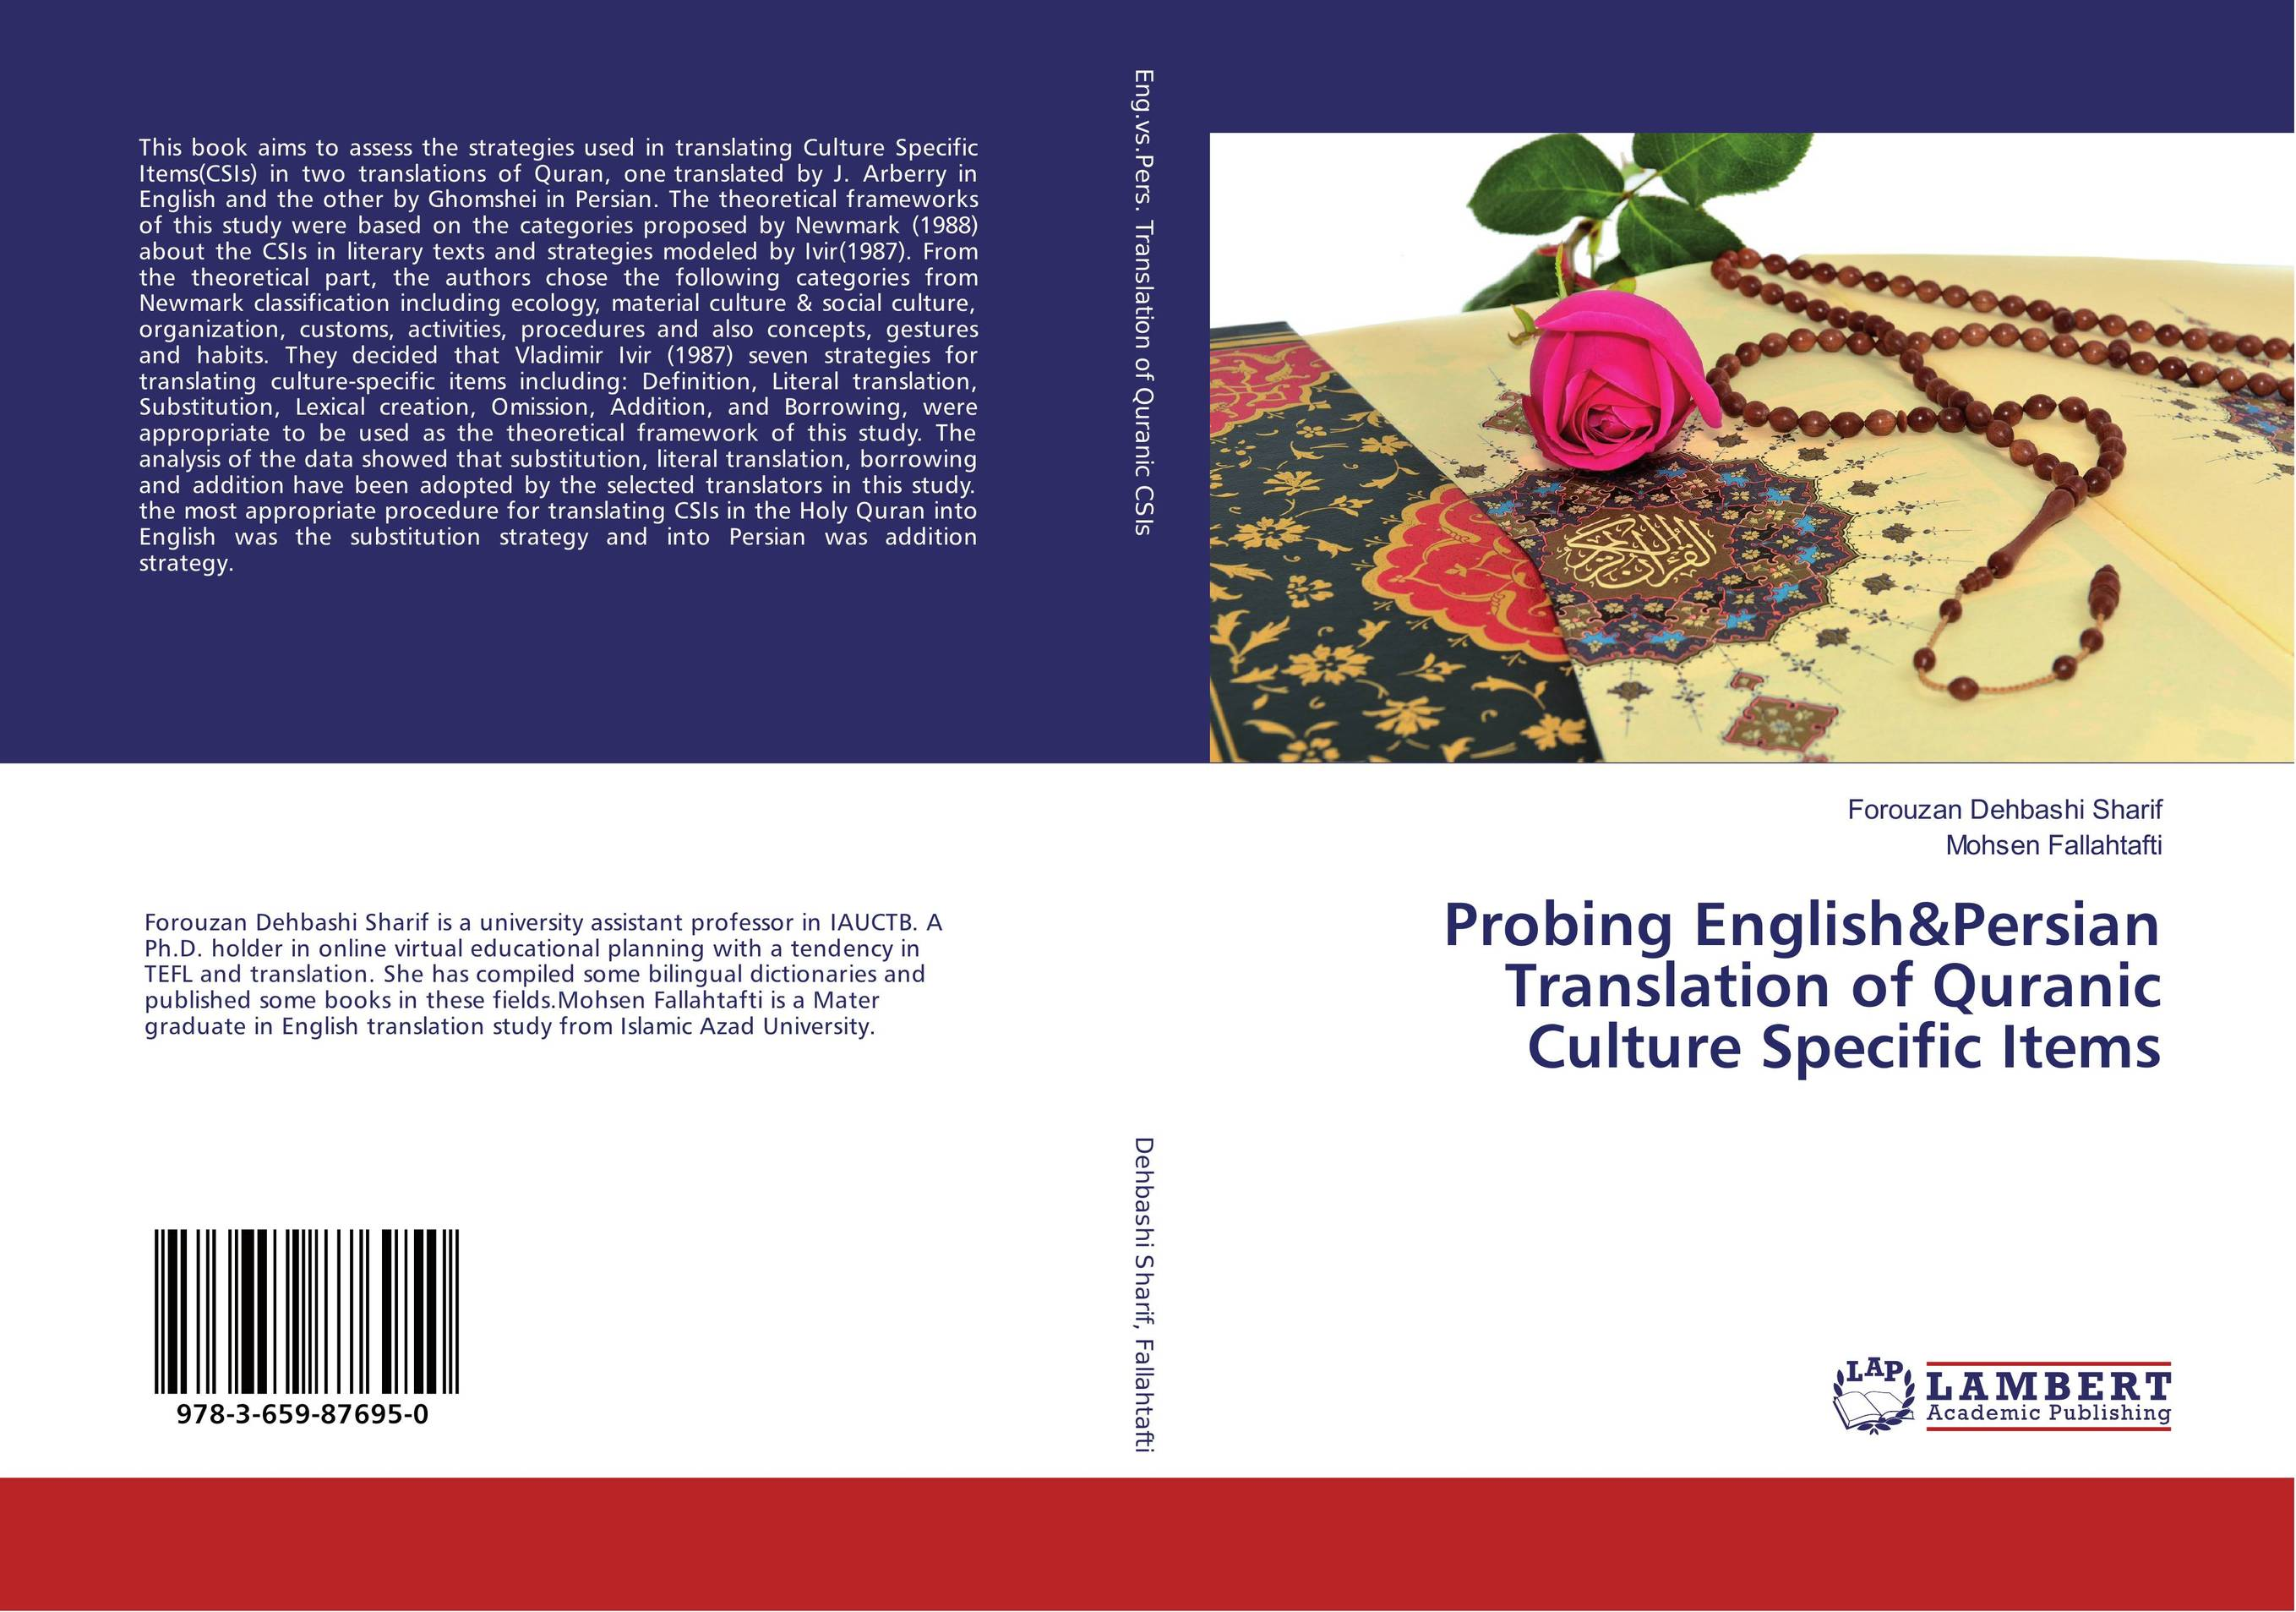 Probing English&Persian Translation of Quranic Culture Specific Items e hutchins culture and inference – a trobriand case study